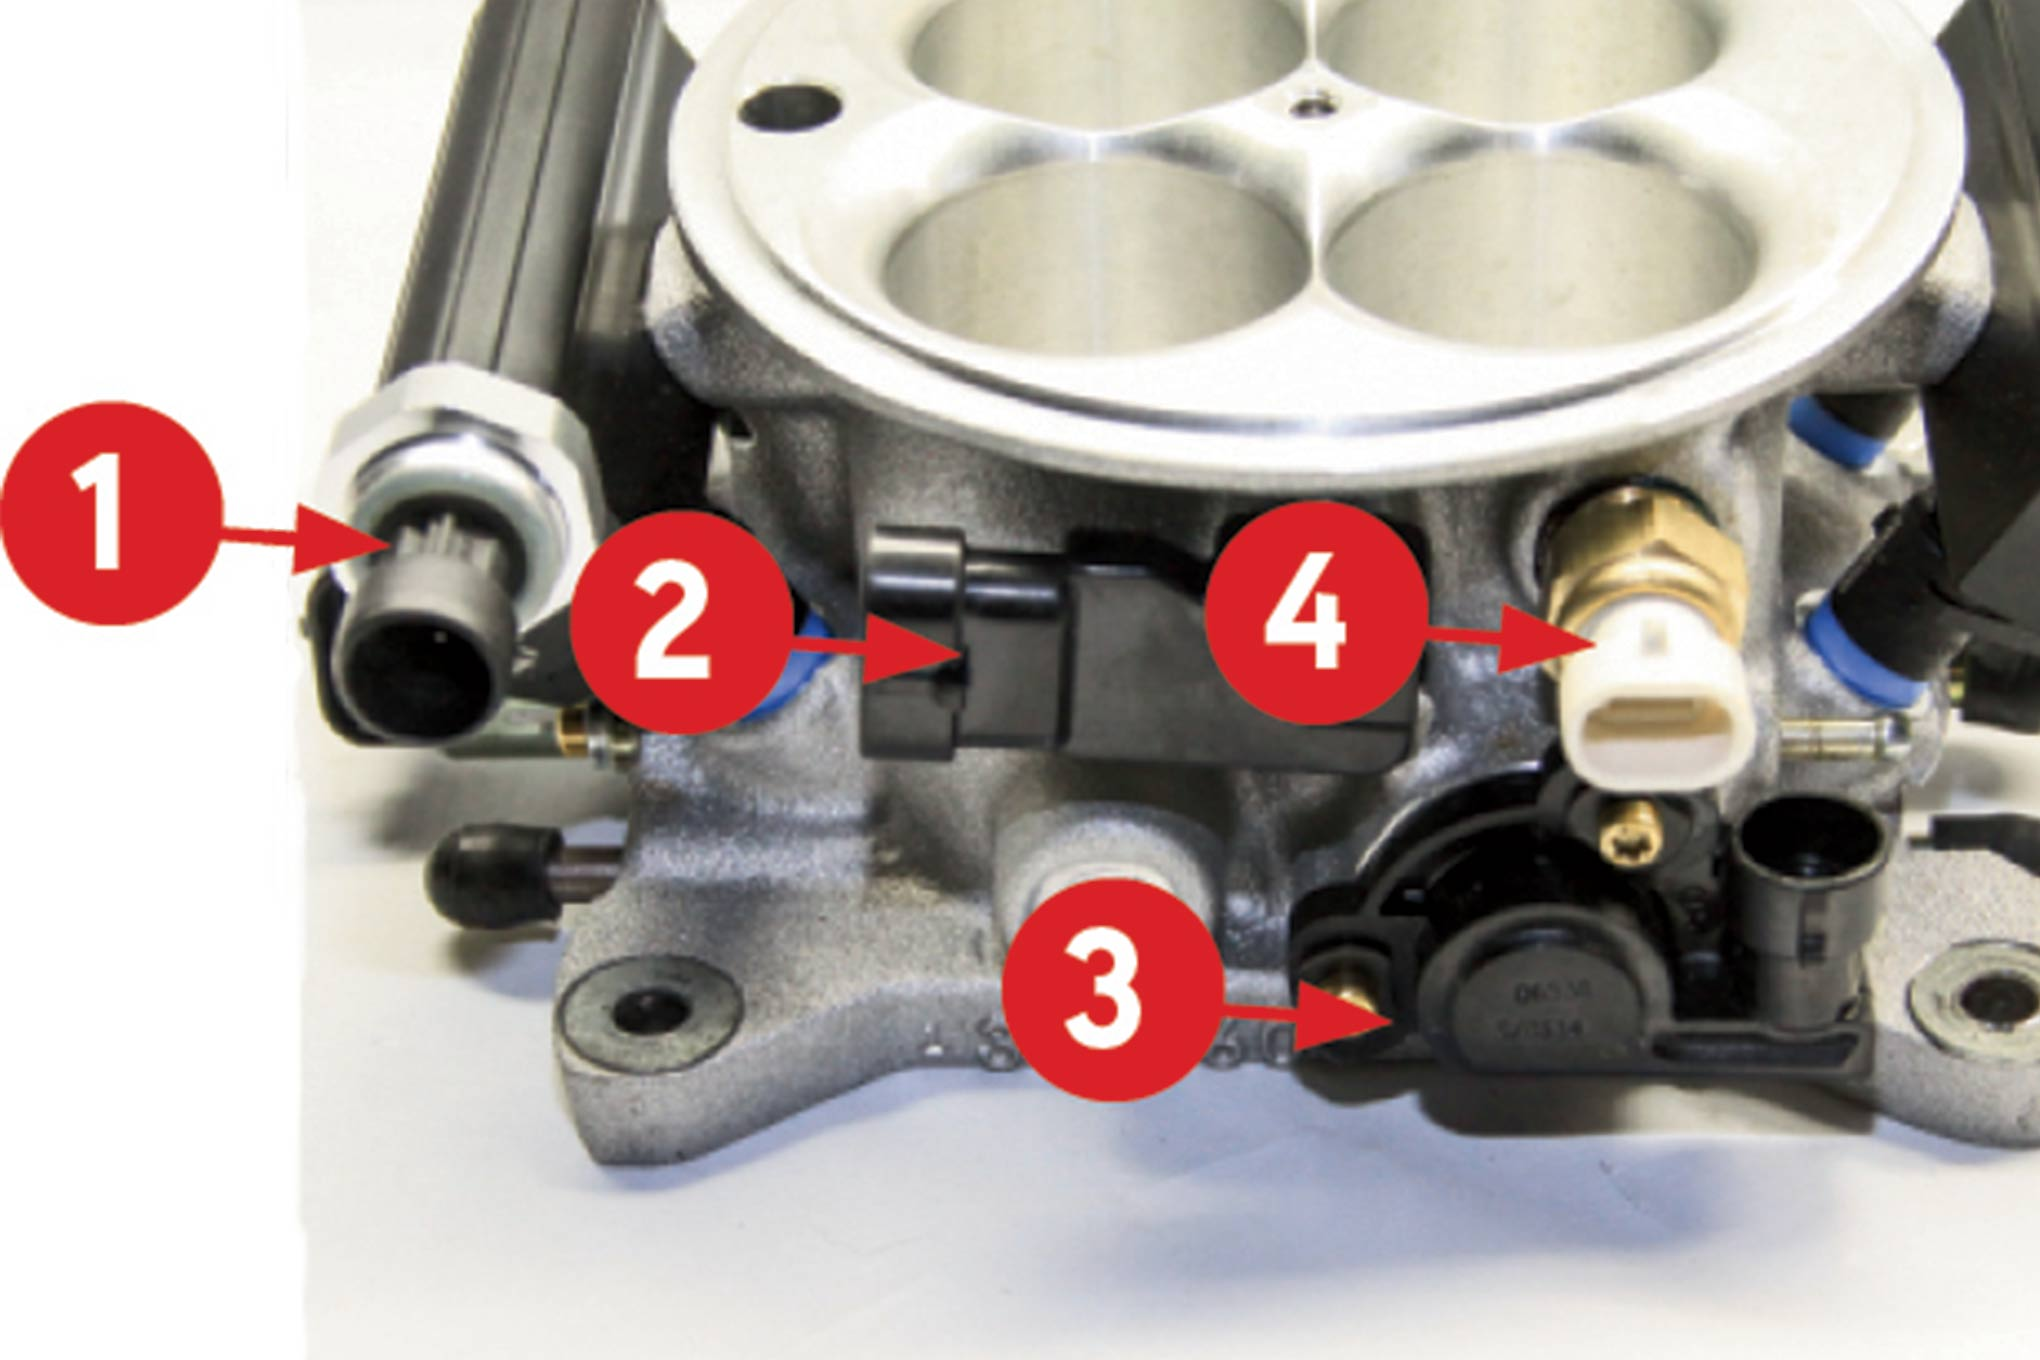 The passenger side of the throttle body mounts (left to right) the pressure sensor in the fuel rail (1), manifold absolute pressure sensor (2), throttle position sensor (3), and the manifold air temperature sensor (4).